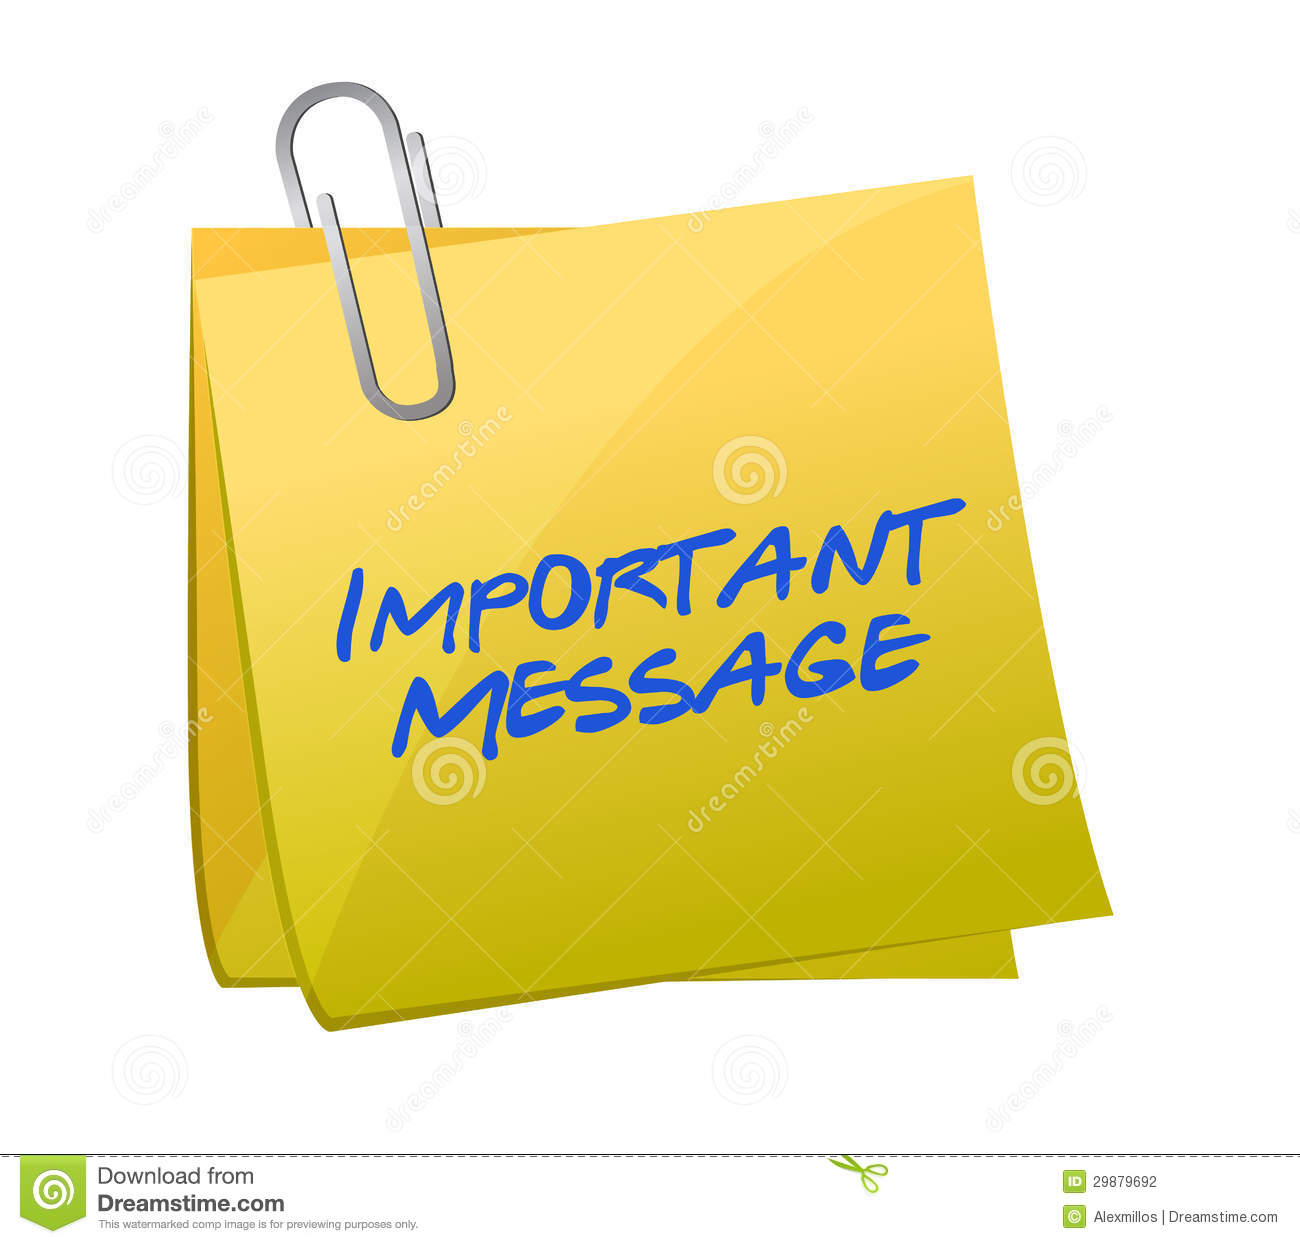 business management important notes Business communication important notes although communication has always been important for business, it is especially important today as companies grow larger.